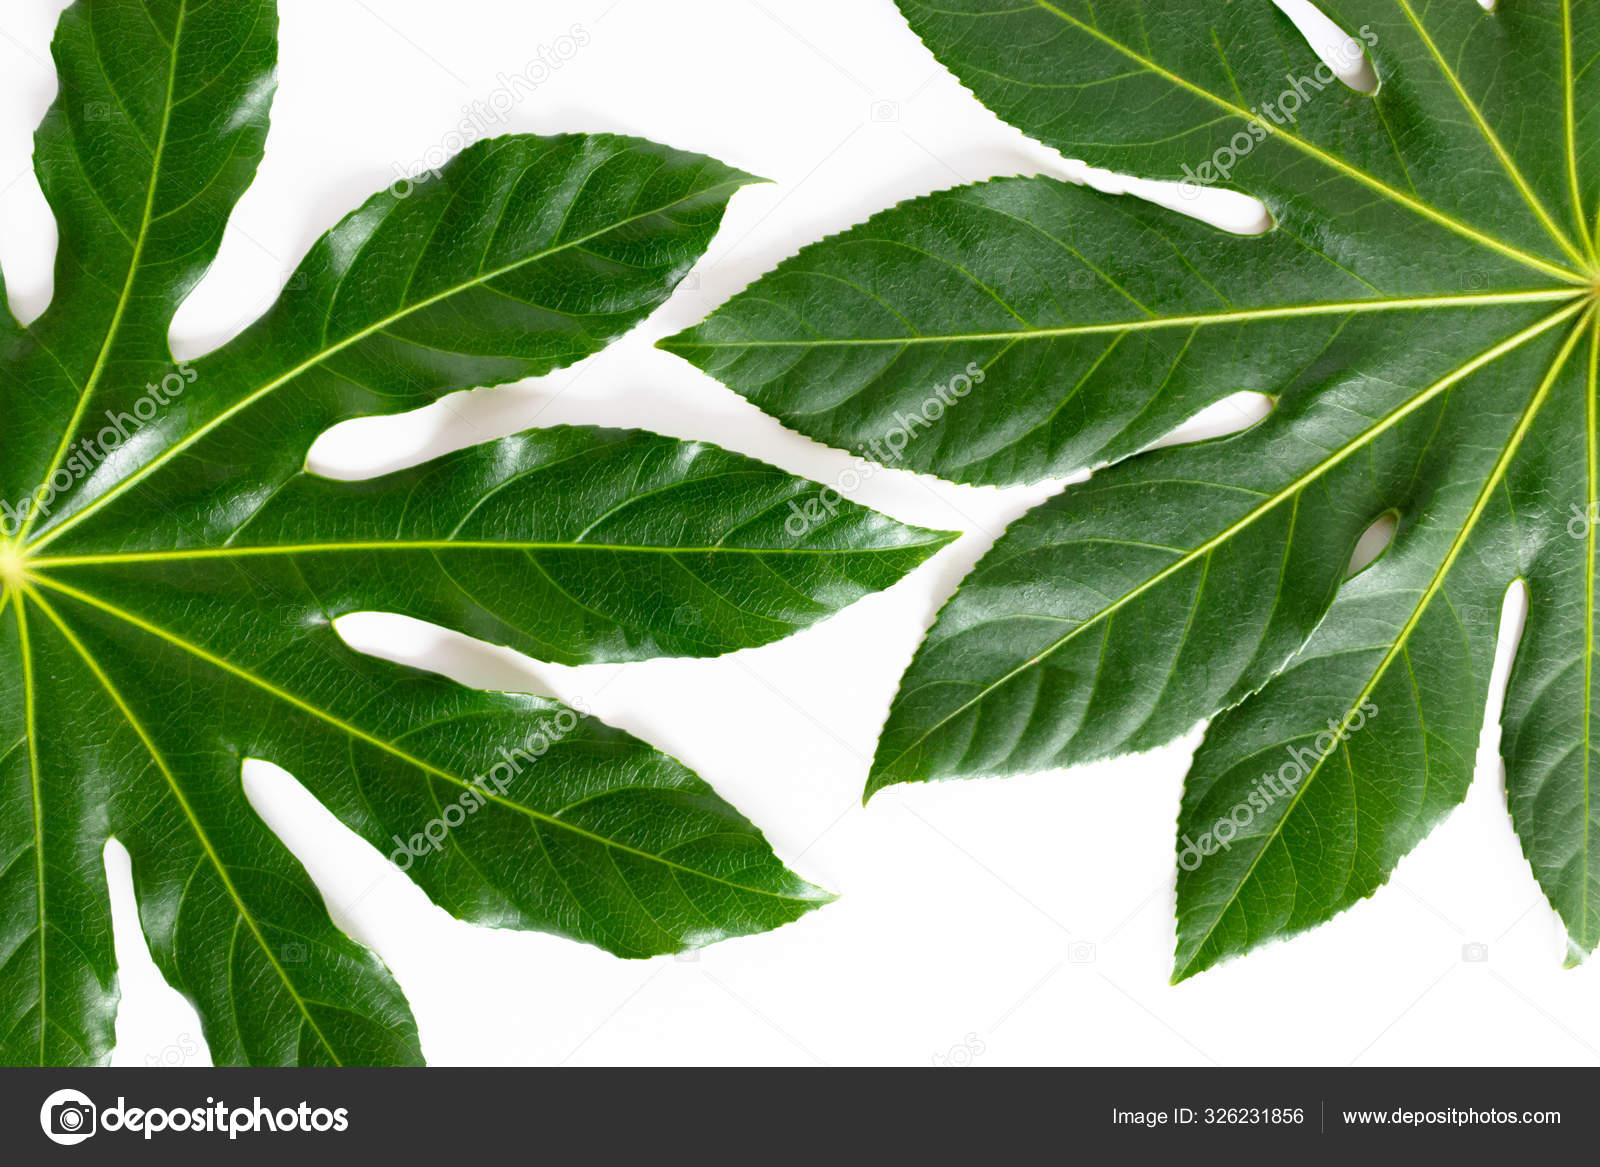 Texture Green Tropical Leaves White Background Stock Photo C Rorygezfresh 326231856 Images photos vector graphics illustrations videos. depositphotos